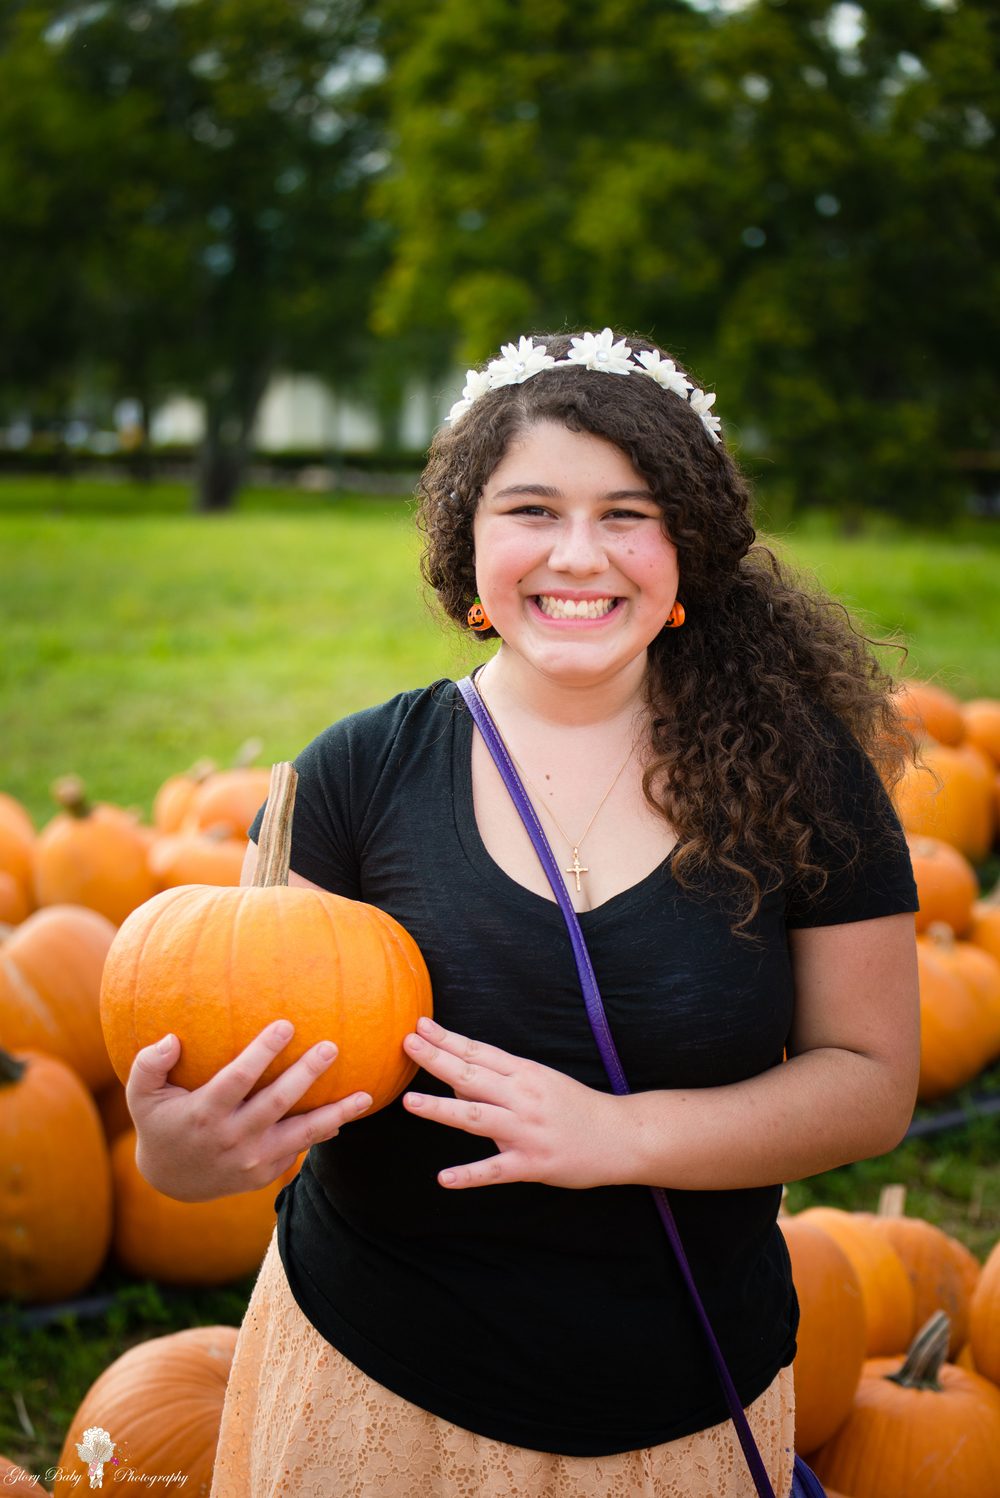 PumpkinPicking2015wm (60 of 64).JPG